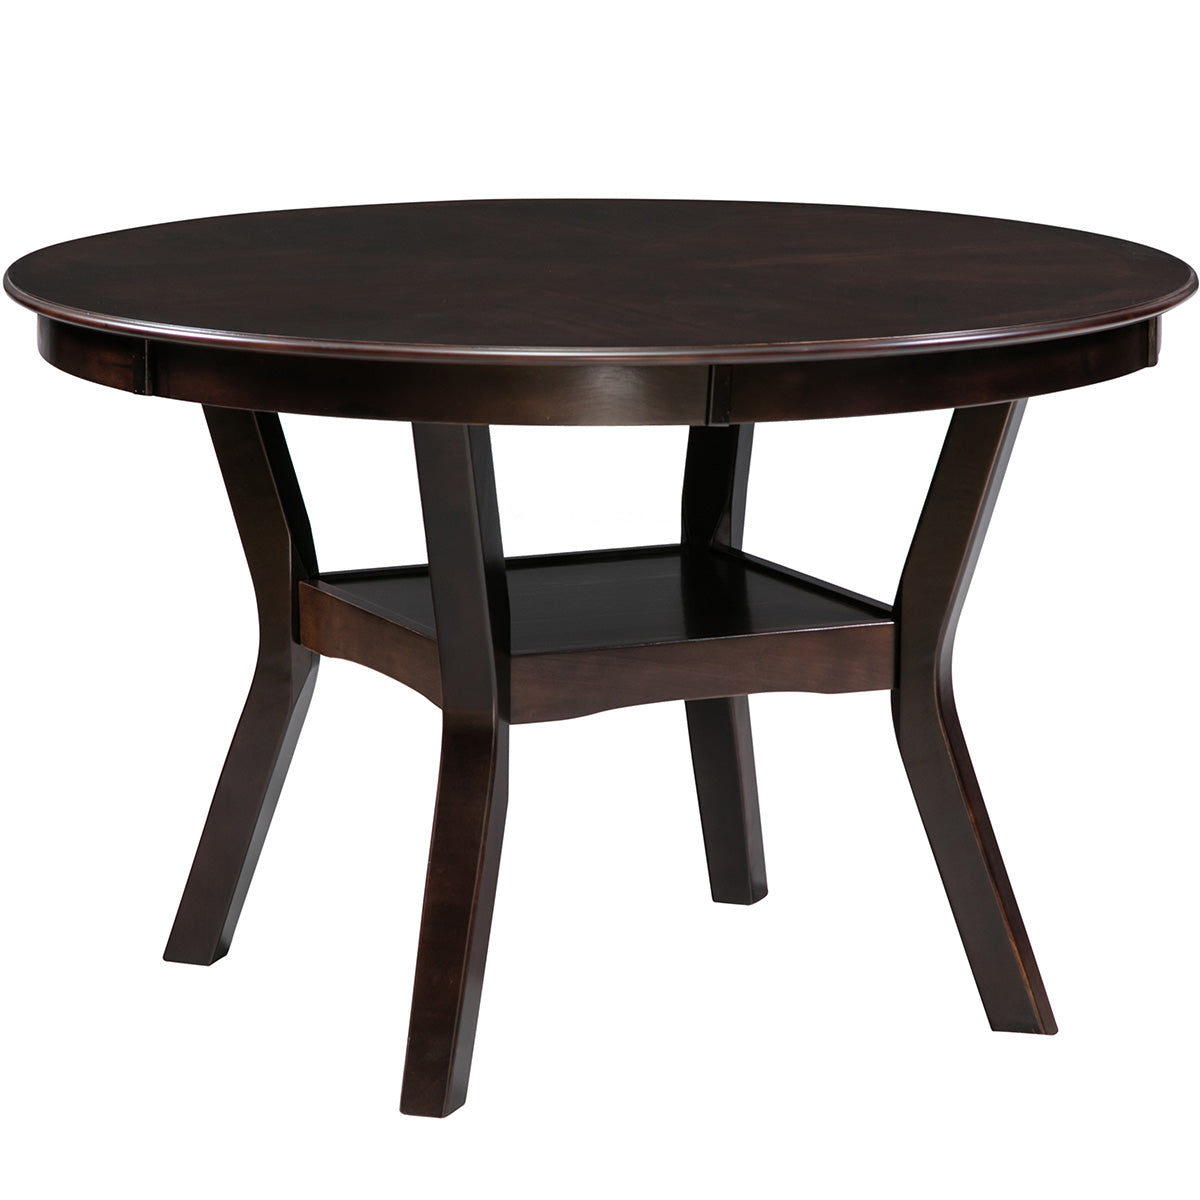 Camande Dining Table, Dining Room Furniture, Espresso,48-Inch (Espresso)